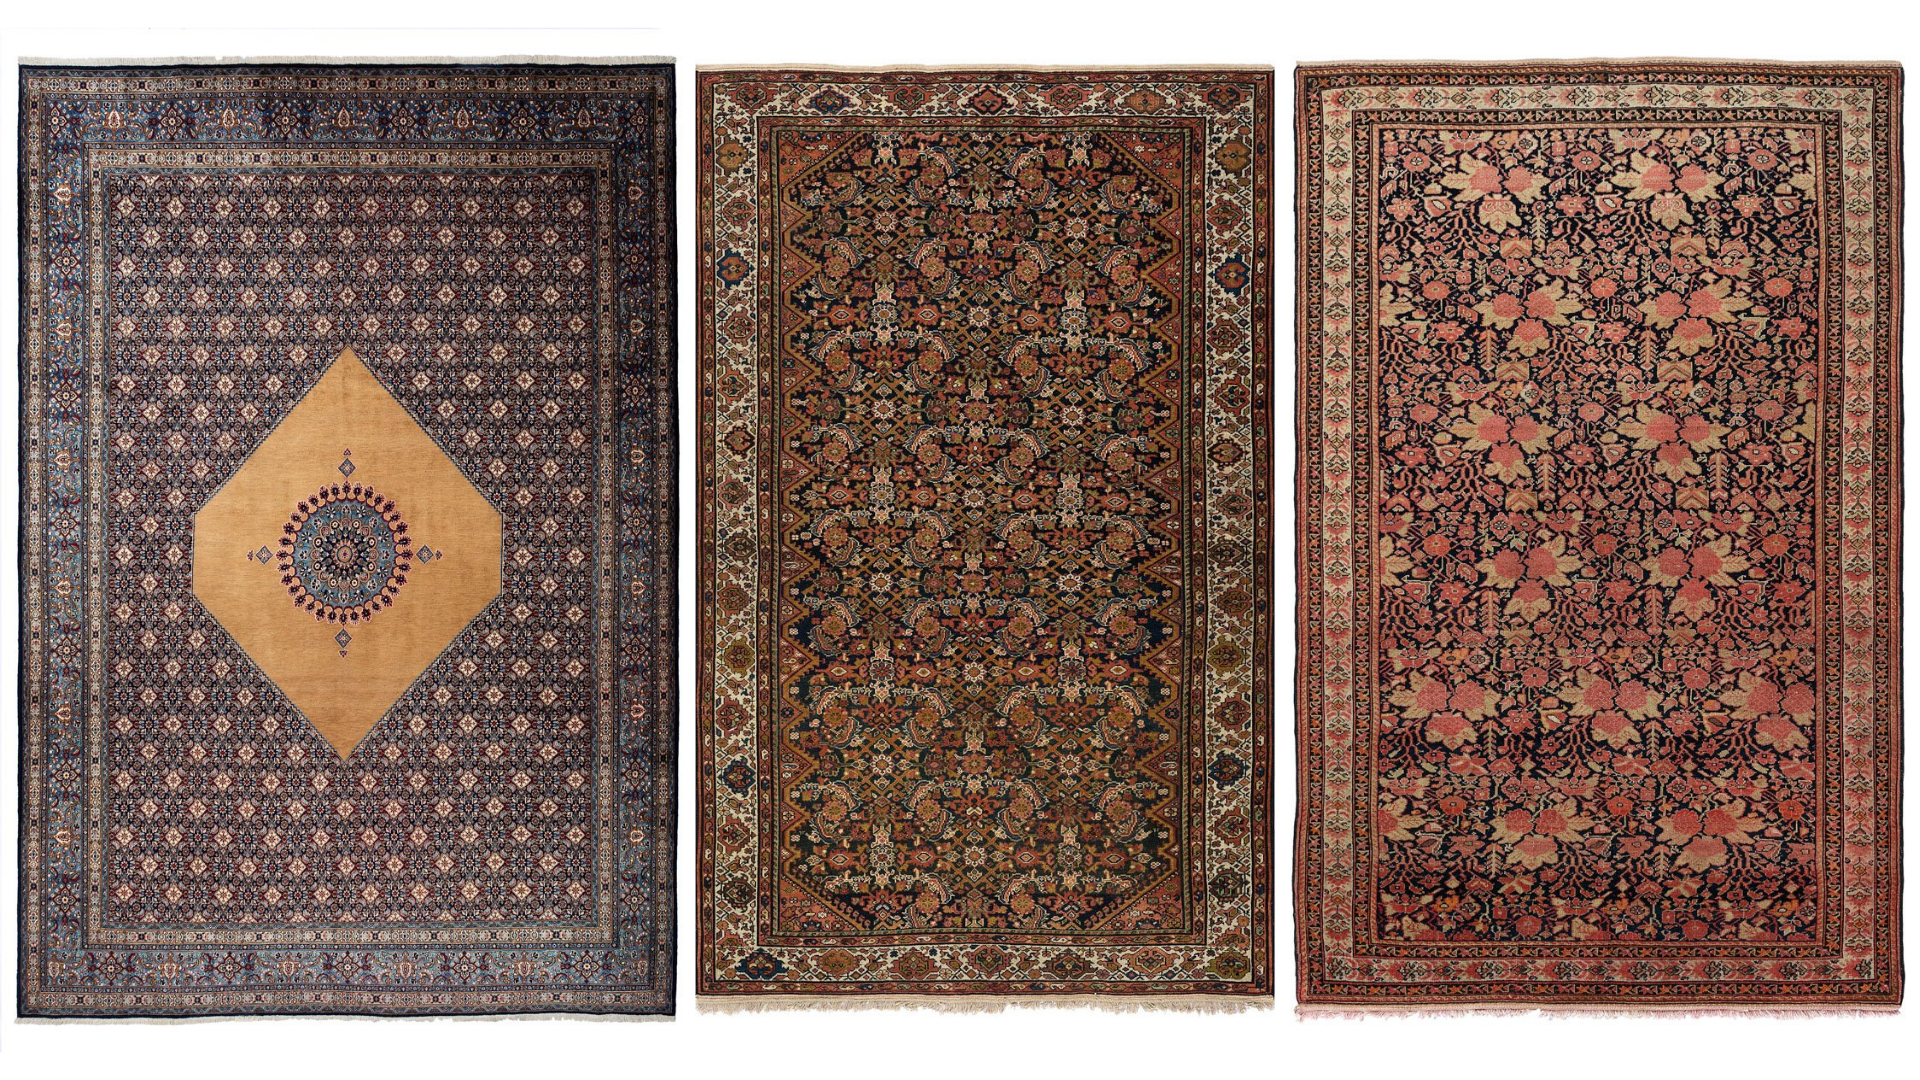 persian rugs, oriental rugs, london rugs, uk rug collections, home decor, home accessories, interior decor, interior designers, interior trends, parisian decor, bedroom decor ideas